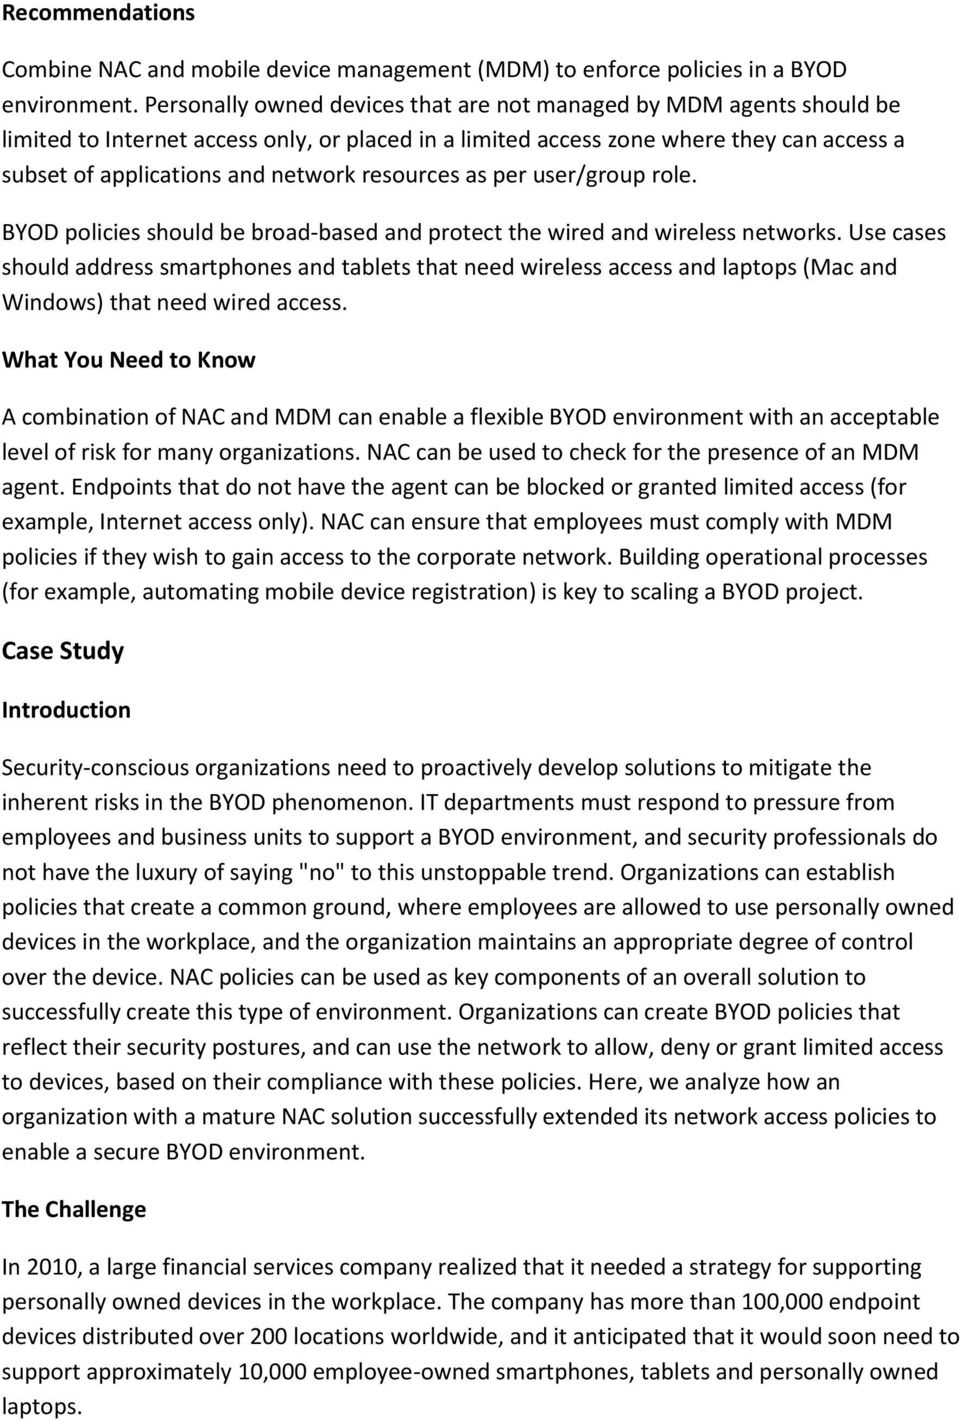 resources as per user/group role. BYOD policies should be broad-based and protect the wired and wireless networks.